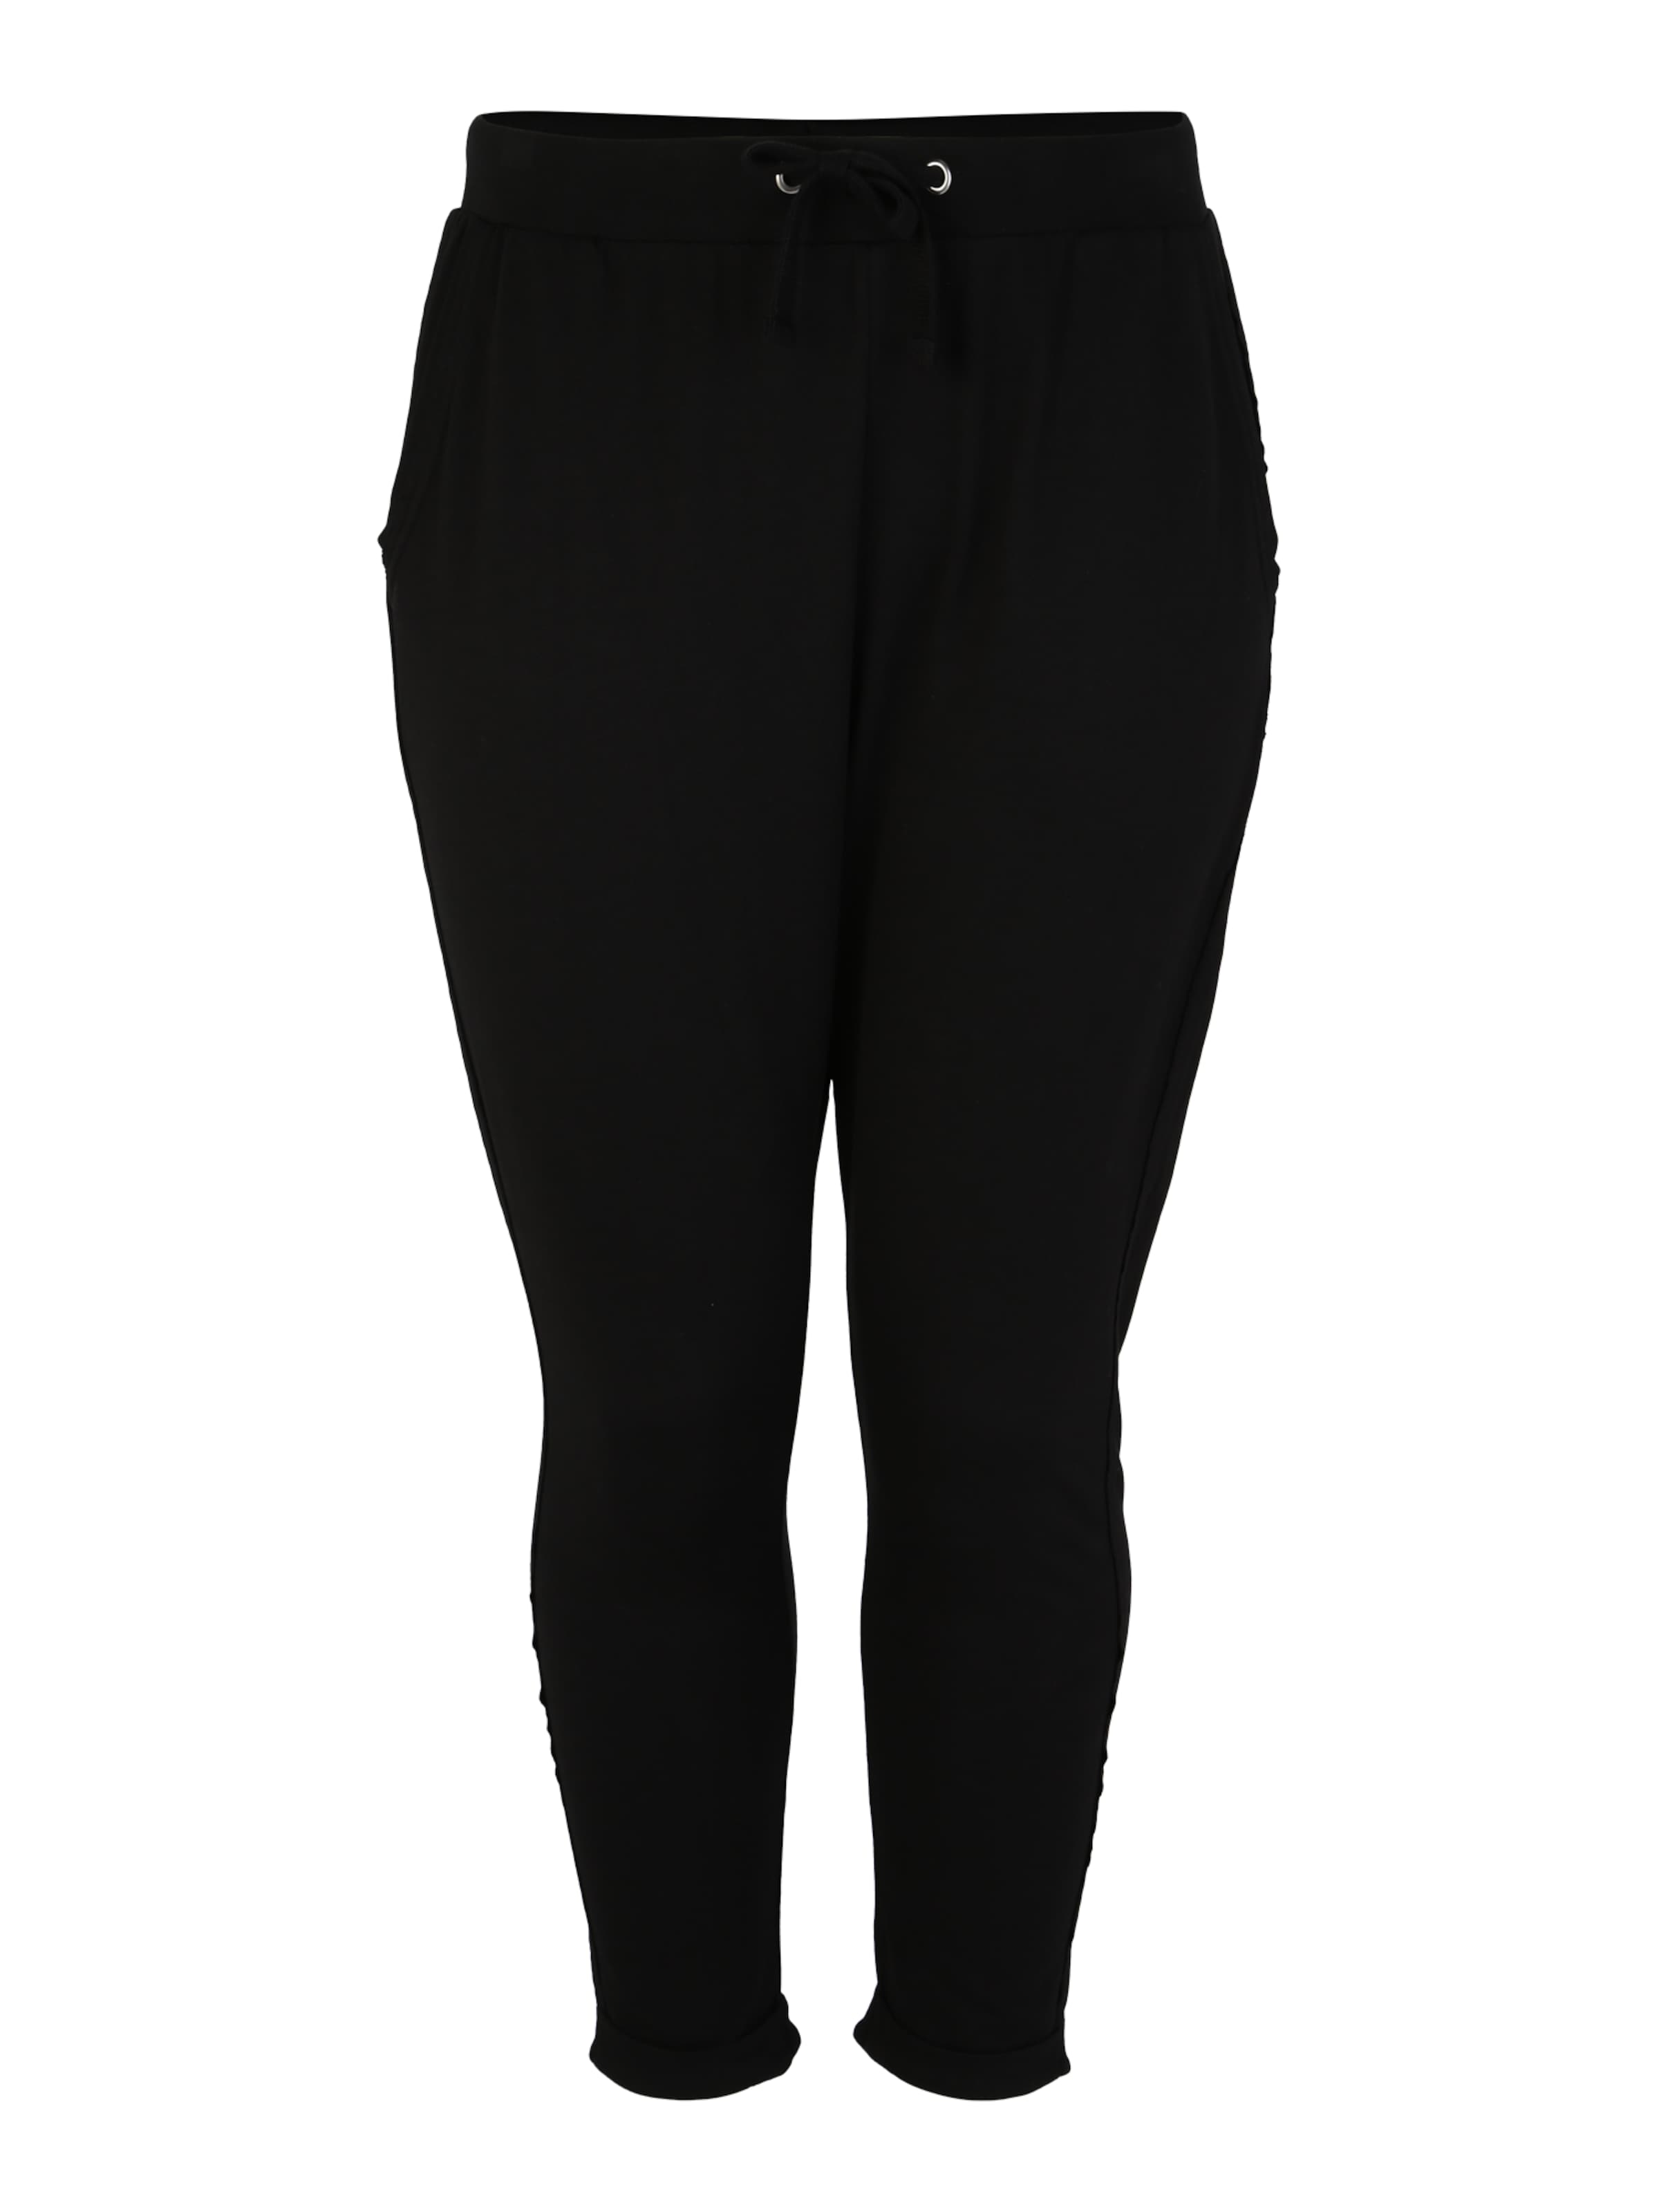 Turn Pantalon Terry Gris Curvy Chiné Up Urban En Edge 'open Classics Pants' rxtQChsd